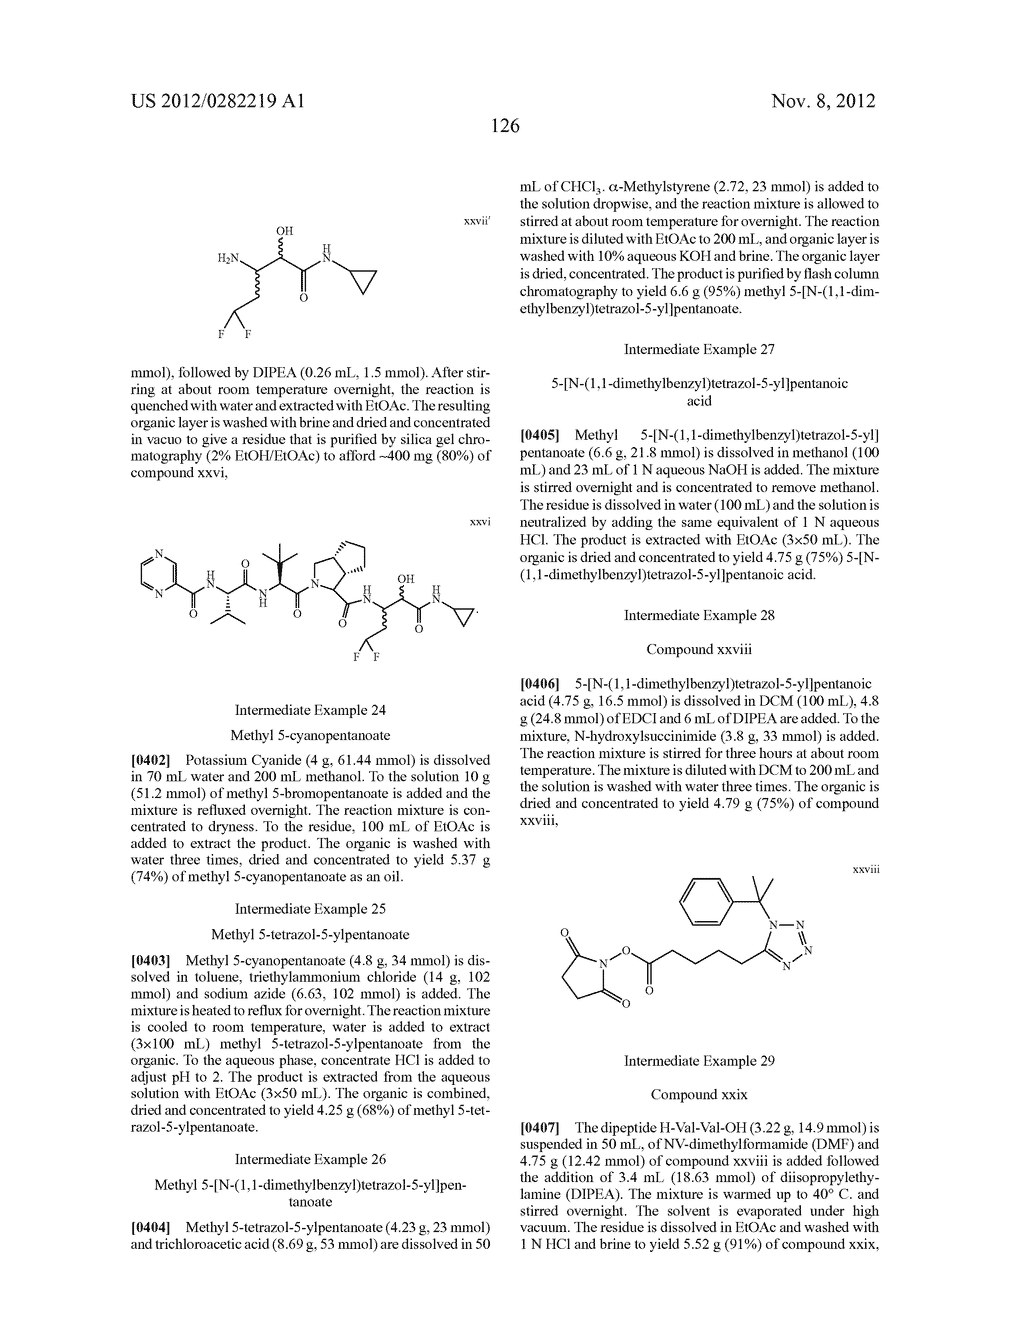 PEPTIDOMIMETIC PROTEASE INHIBITORS - diagram, schematic, and image 141